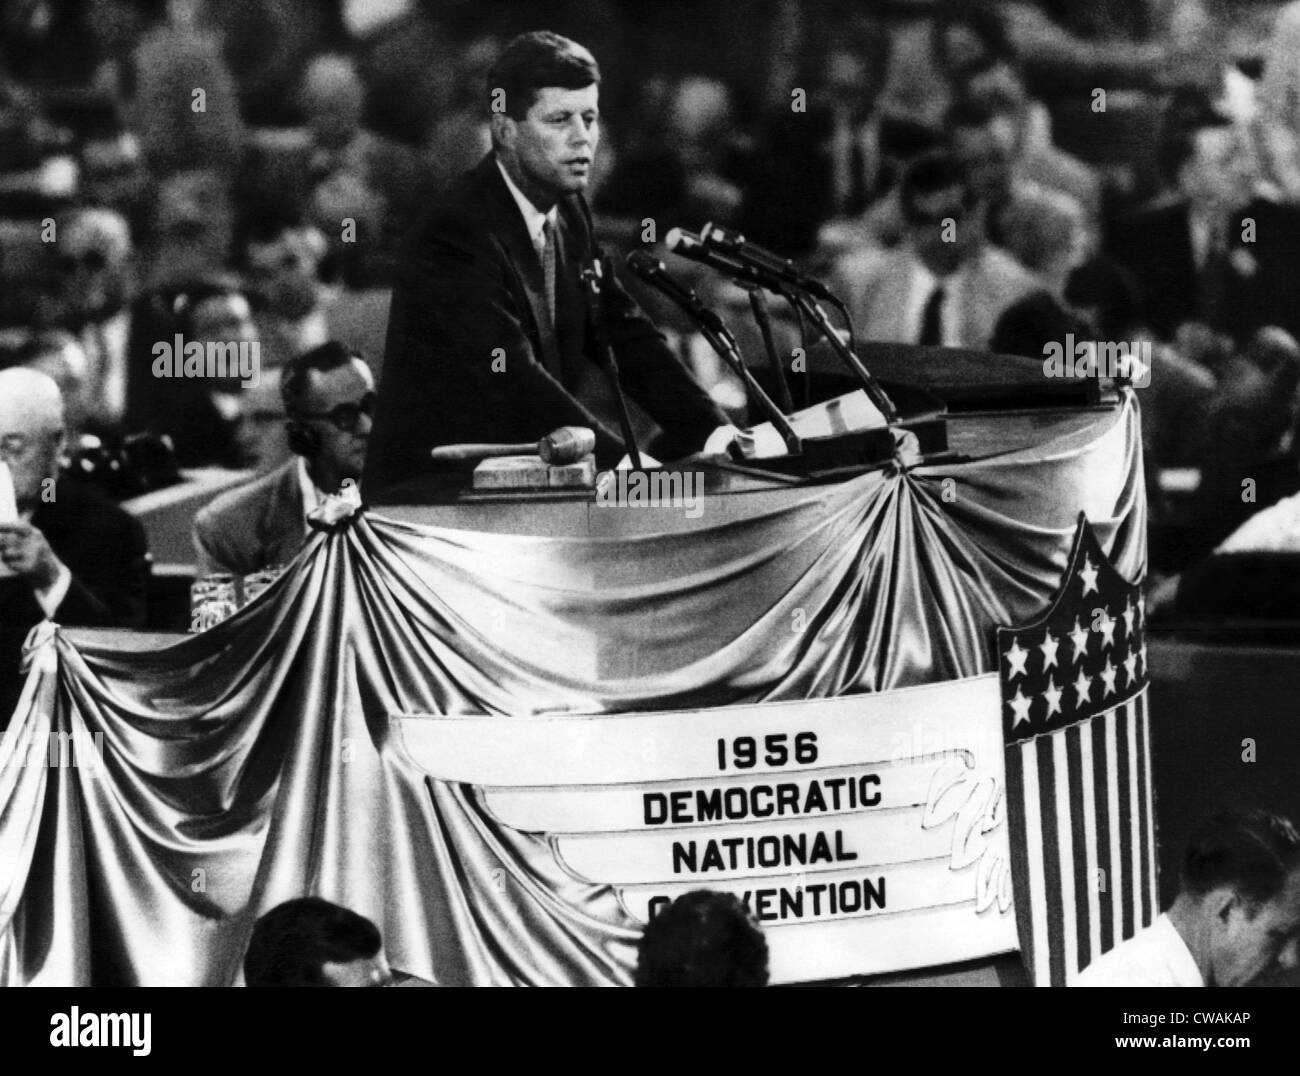 John F. Kennedy at the Democratic National Convention, August 16, 1956.. Courtesy: CSU Archives / Everett Collection - Stock Image